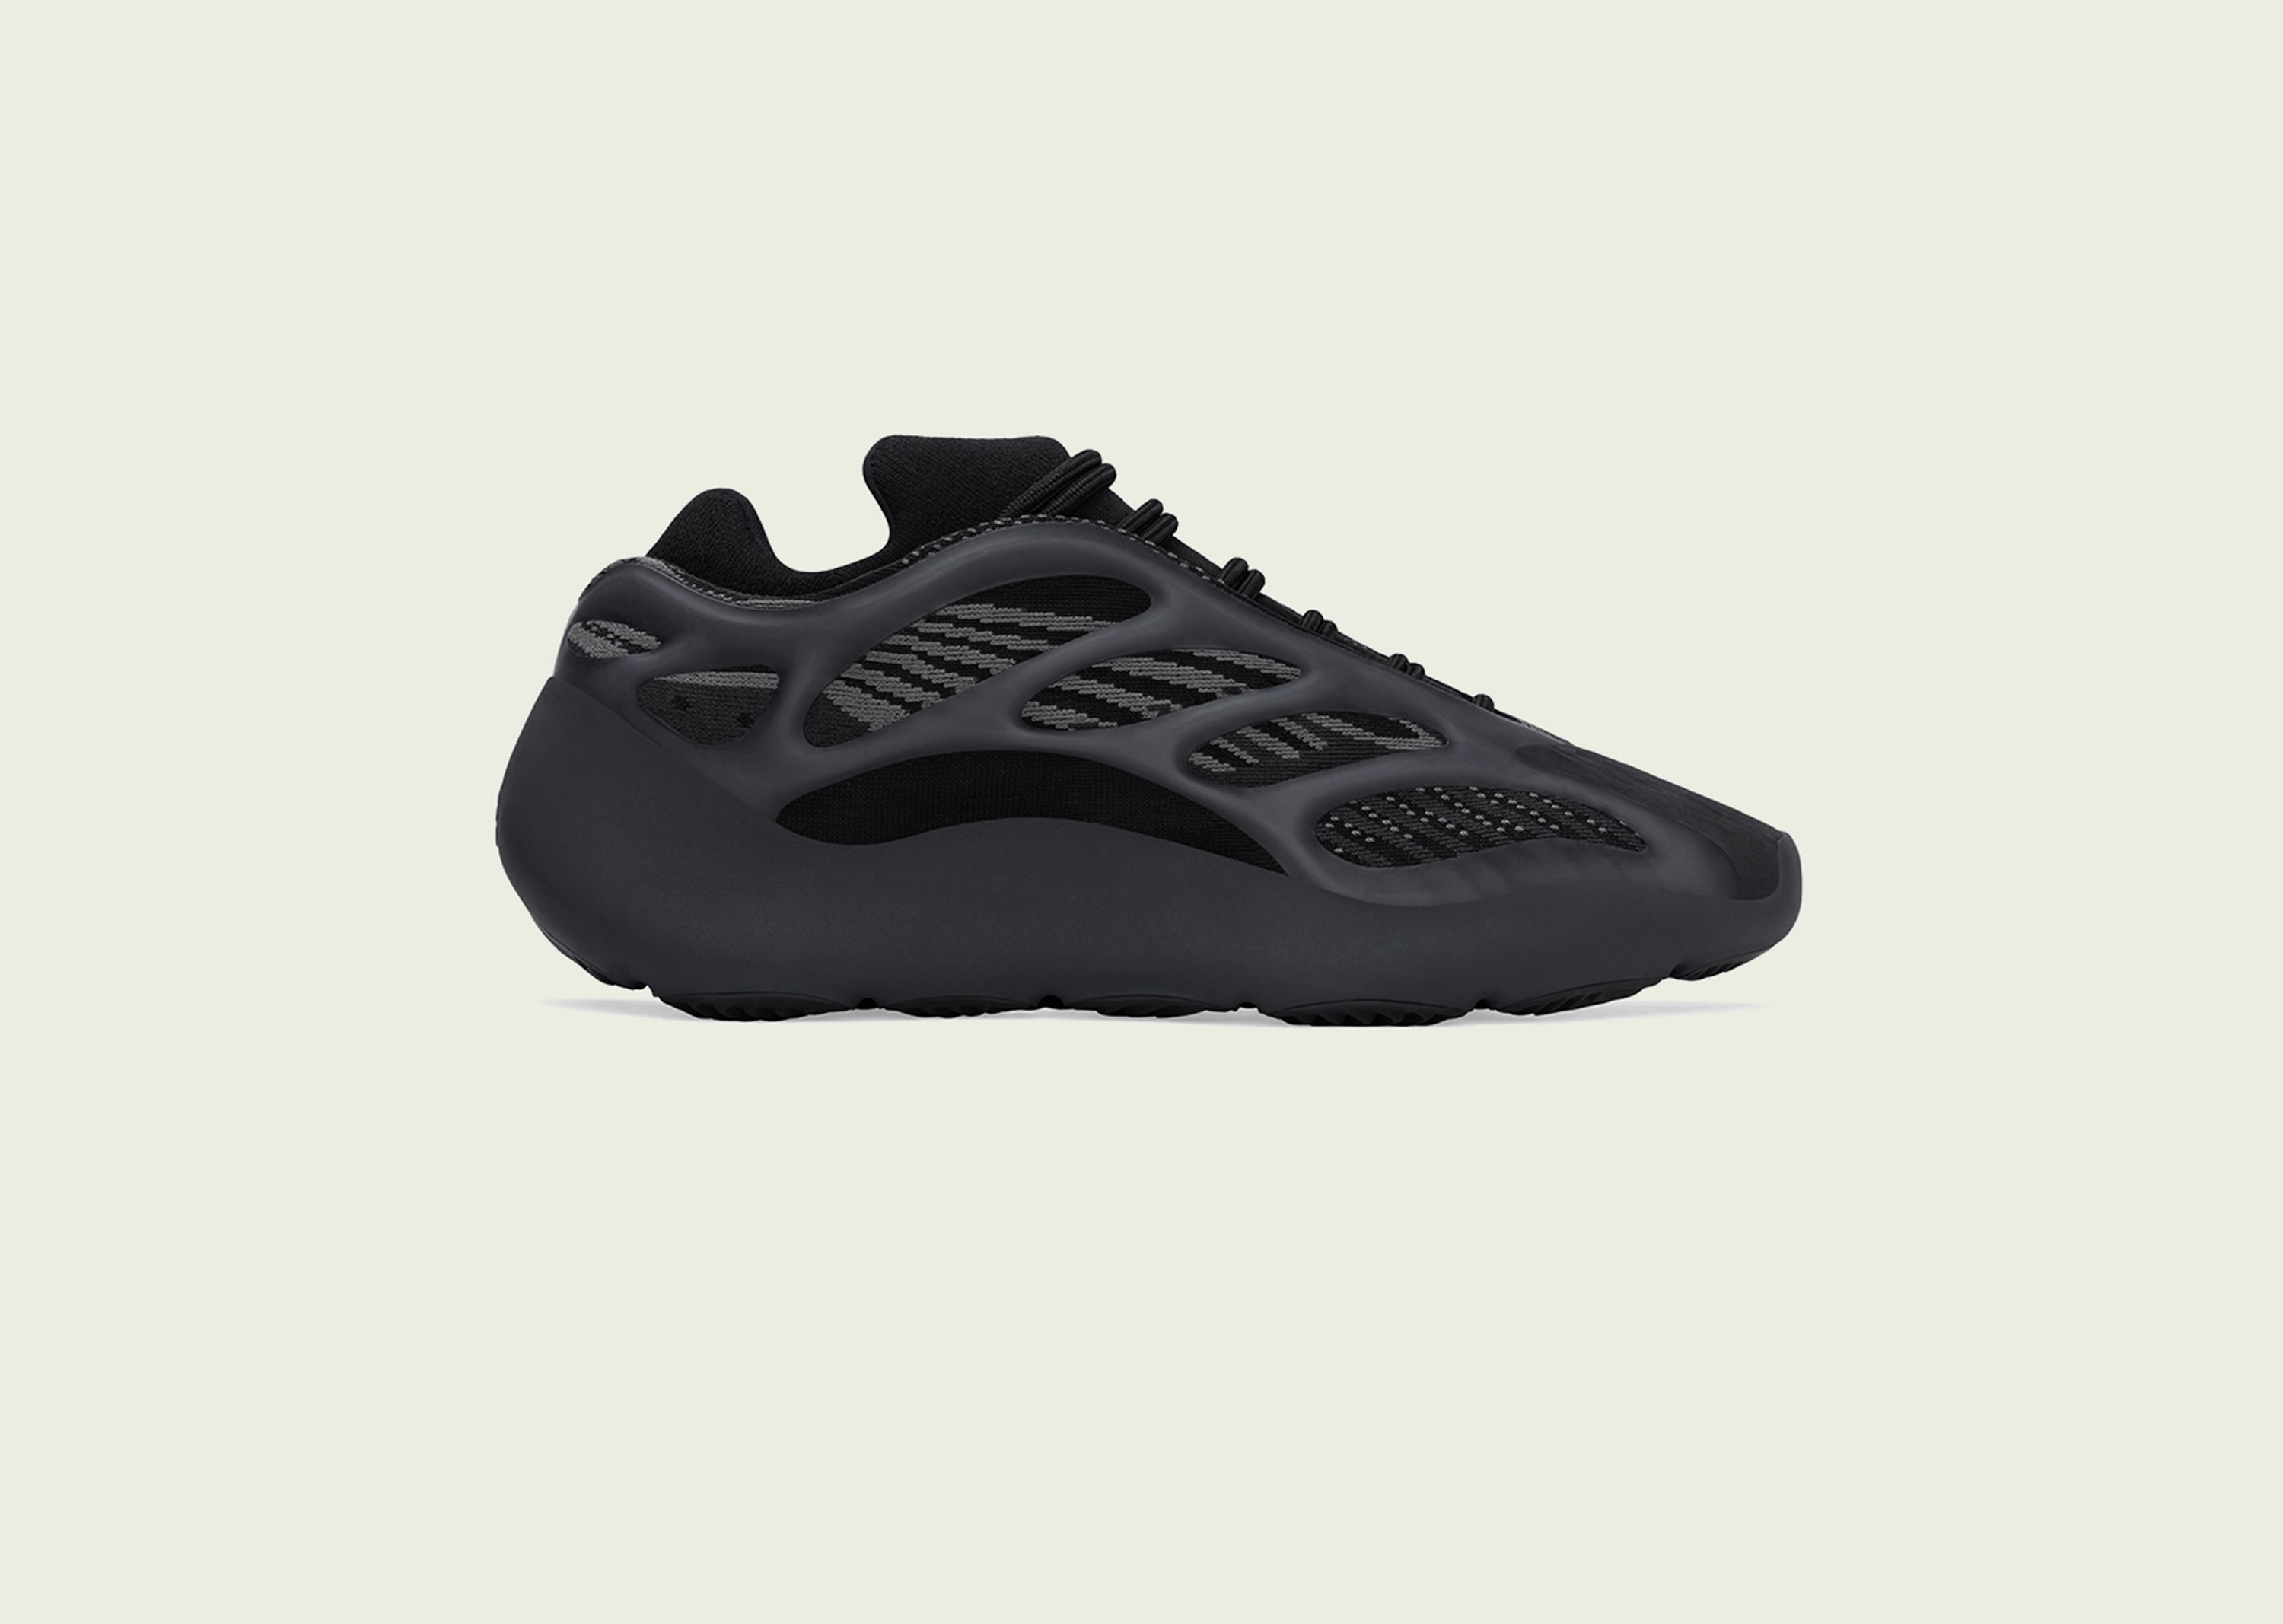 yeezy_alvah_blog_0001_YEEZY_700_V3_ALVAH_Right_Social_IG_1200x1200